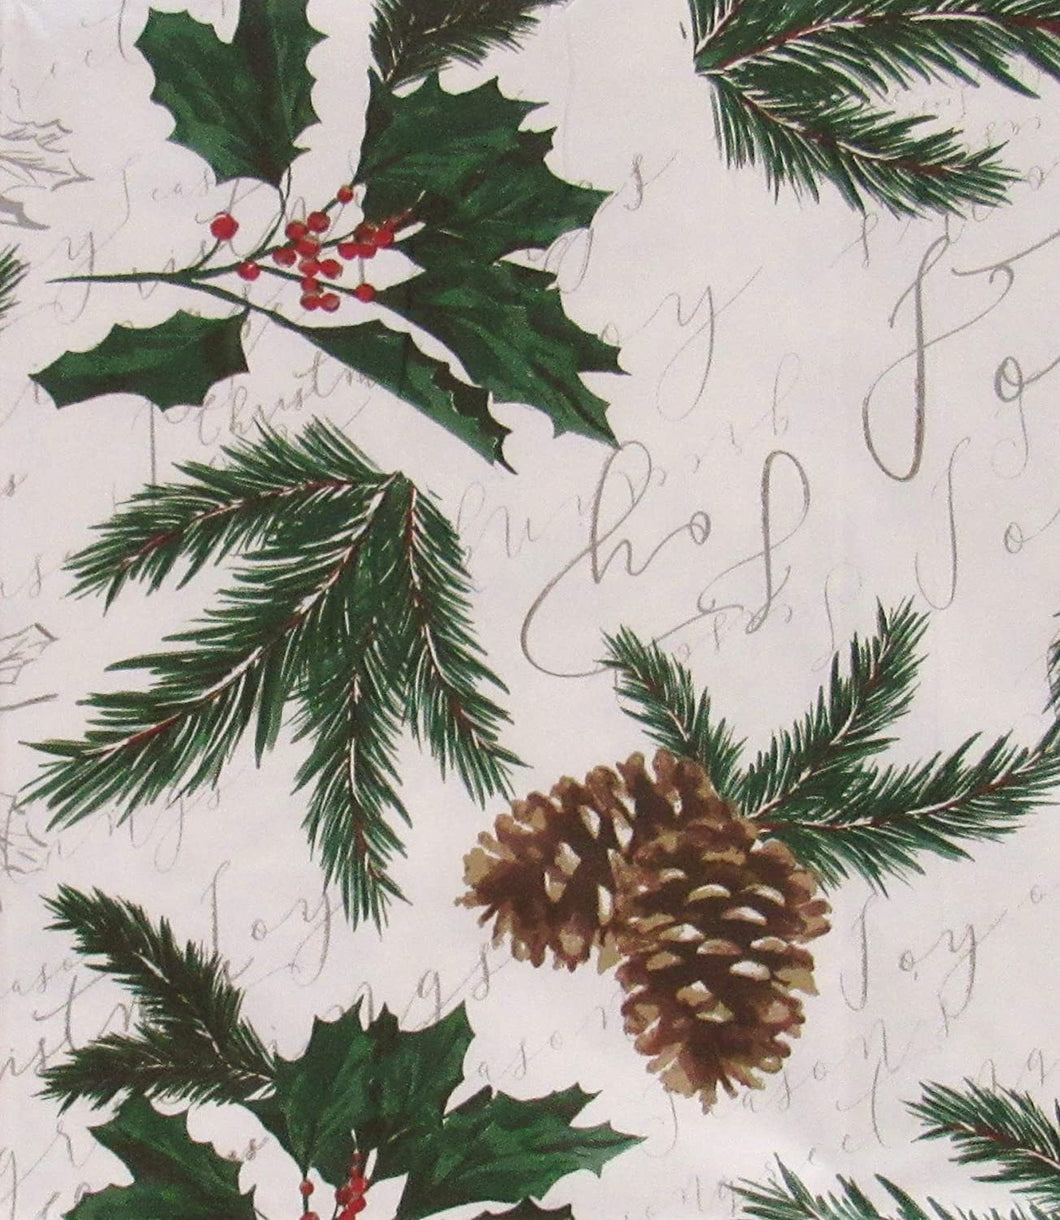 Christmas Vinyl Flannel Tablecloth 52 x 70 Oblong Pine Branches Pine Cones Holly